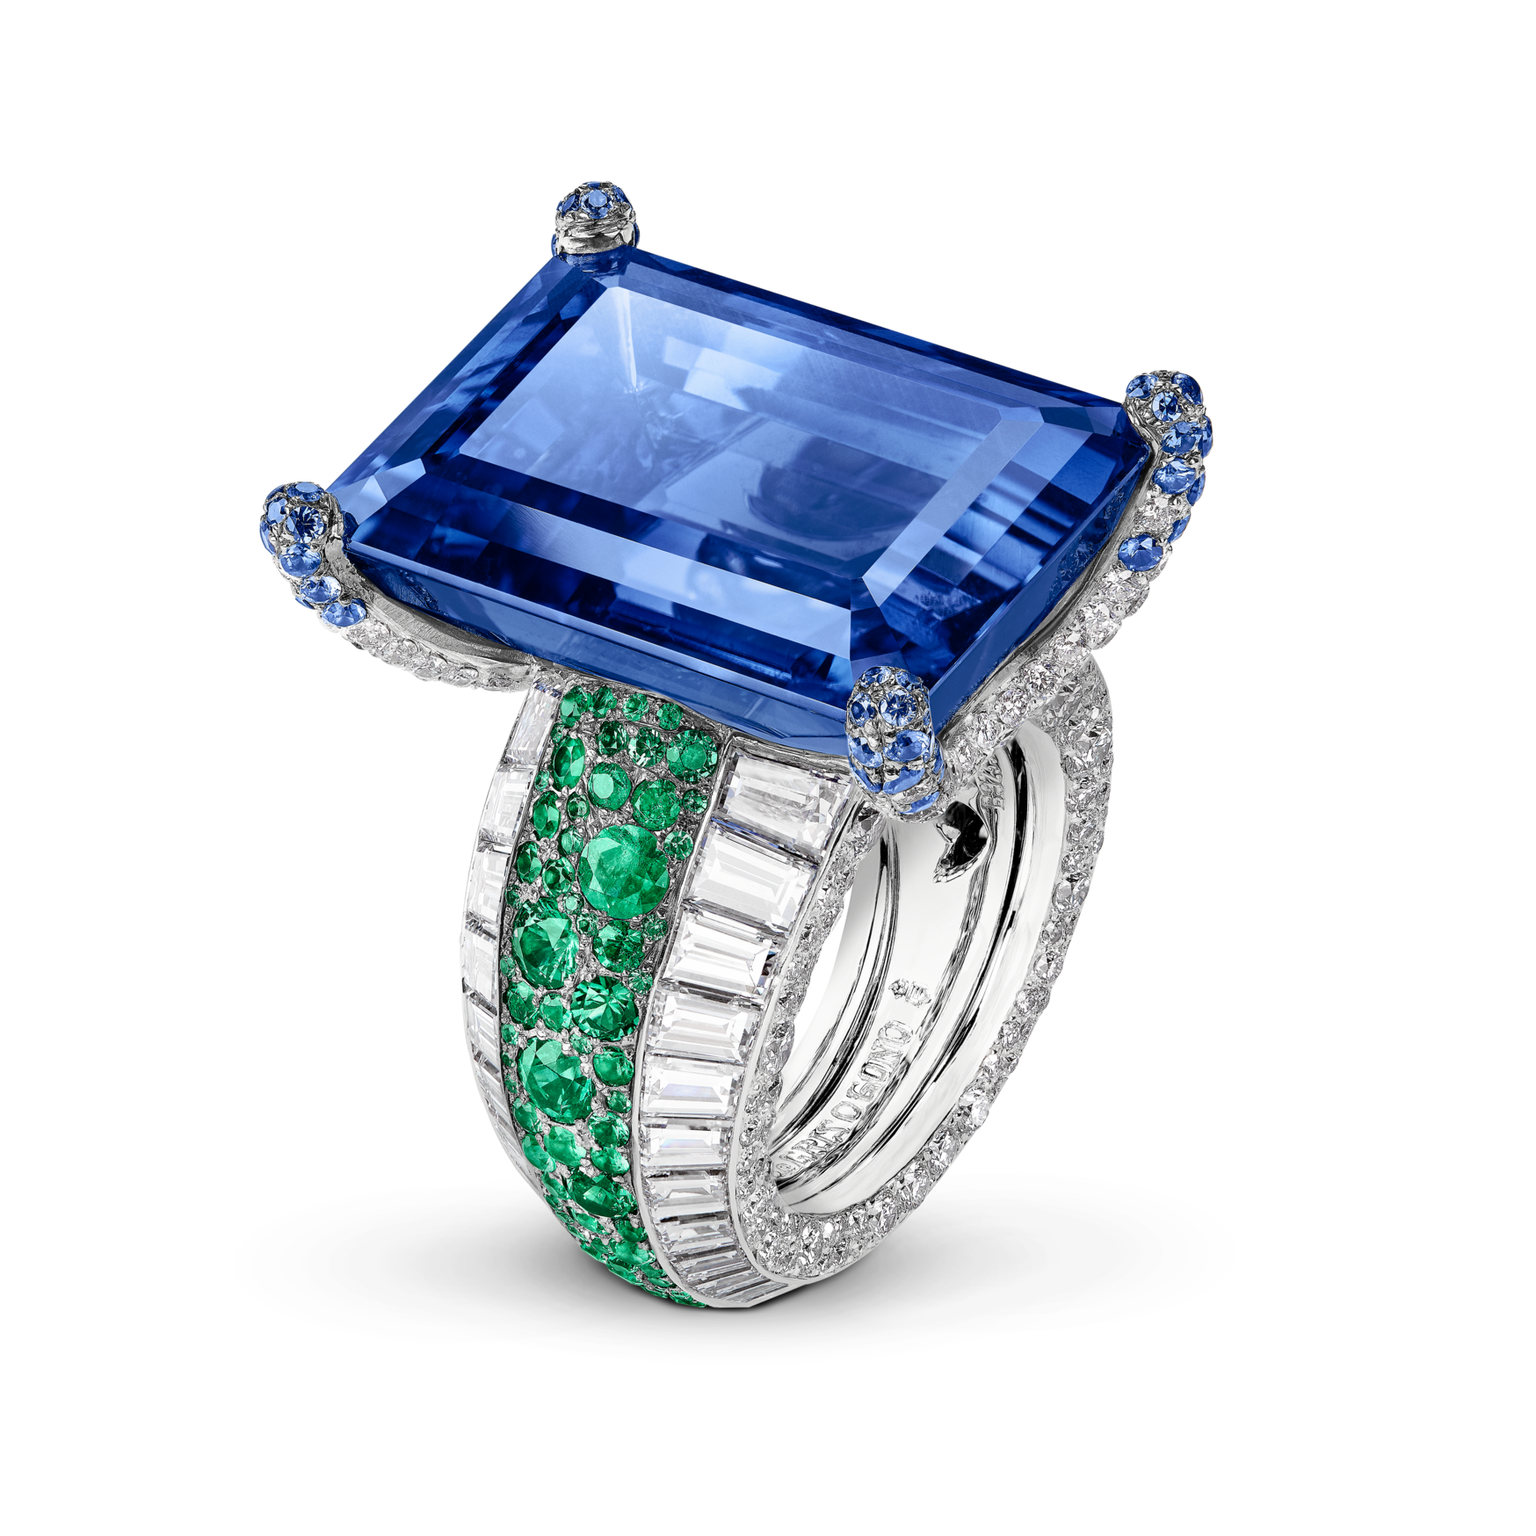 de GRISOGONO Love on the Rocks High Jewellery ring